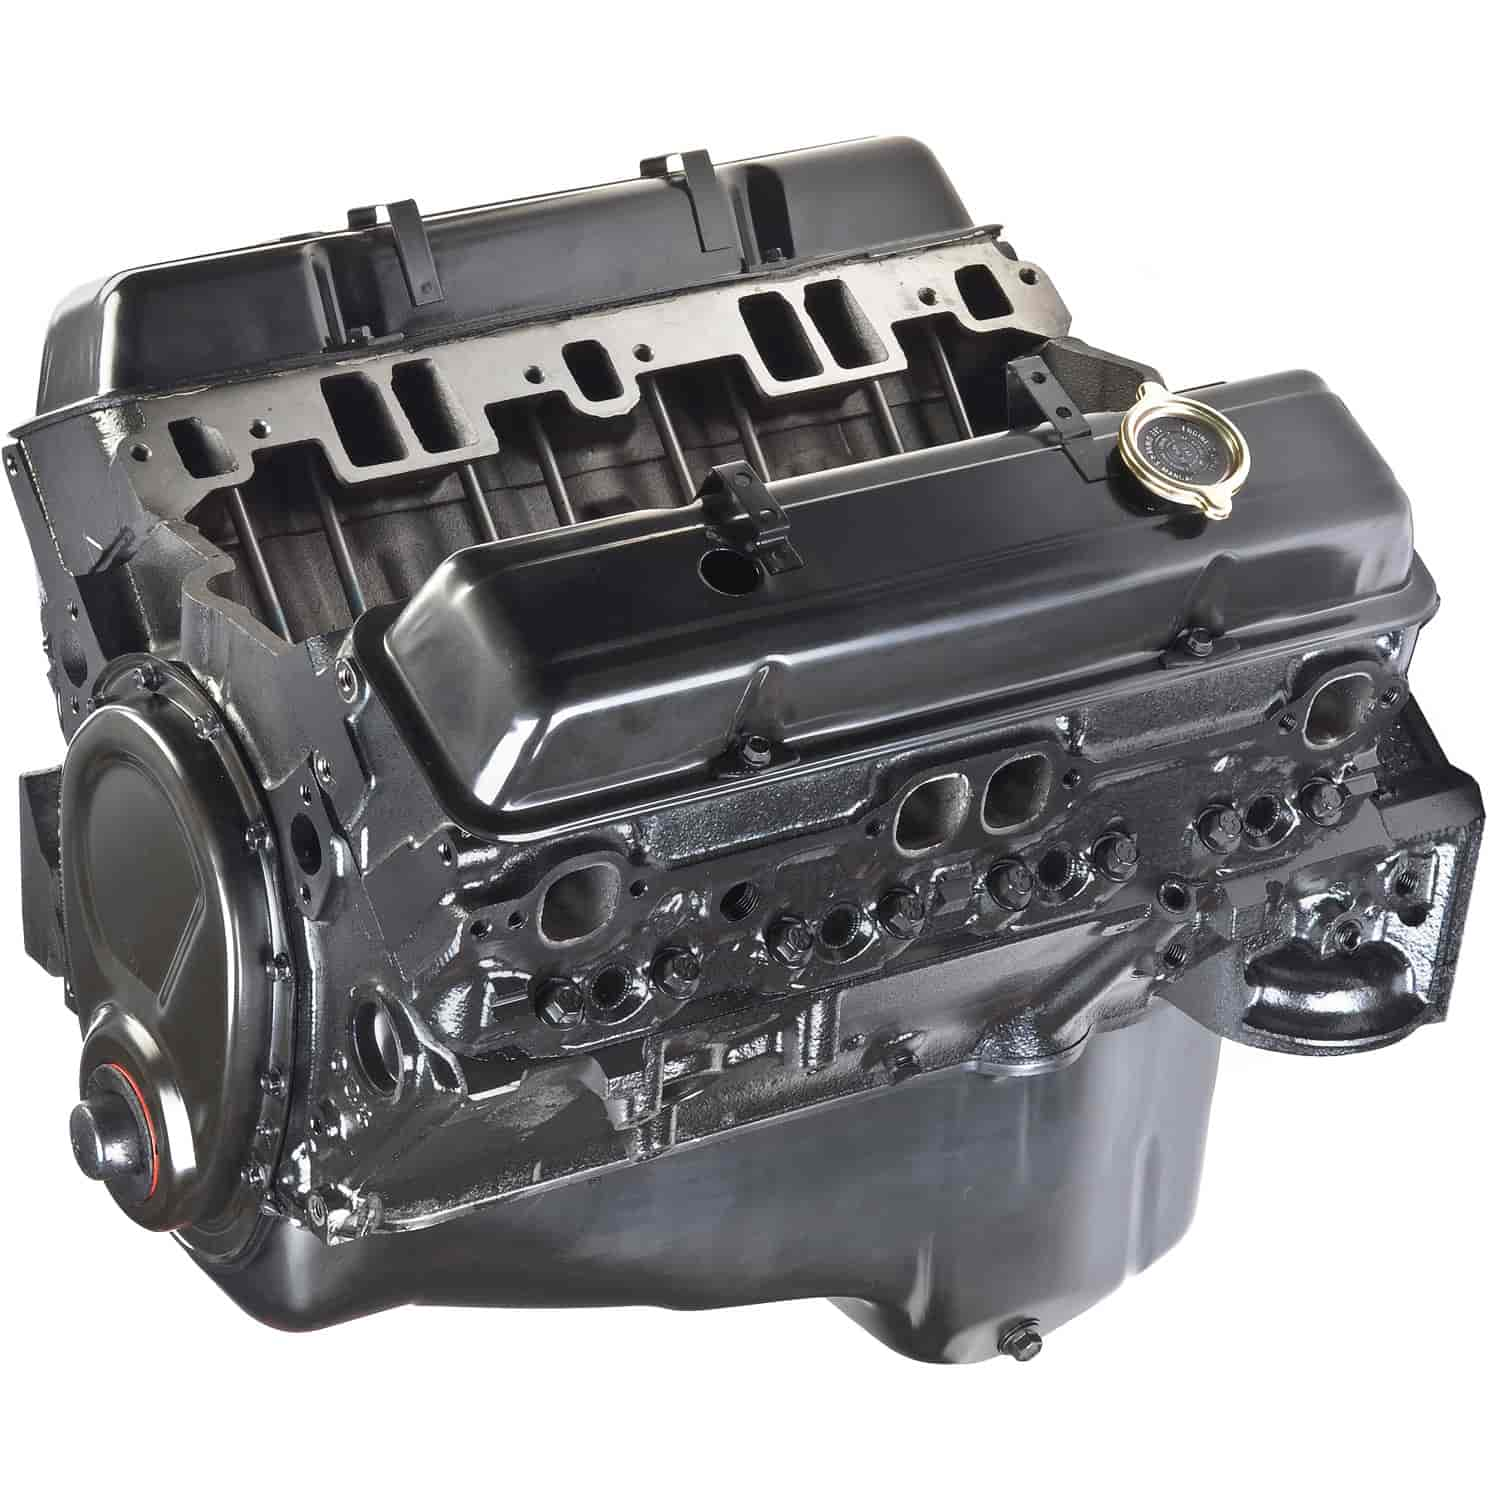 10067353 New Chevy 350 Cid V8 Universal Crate Engine